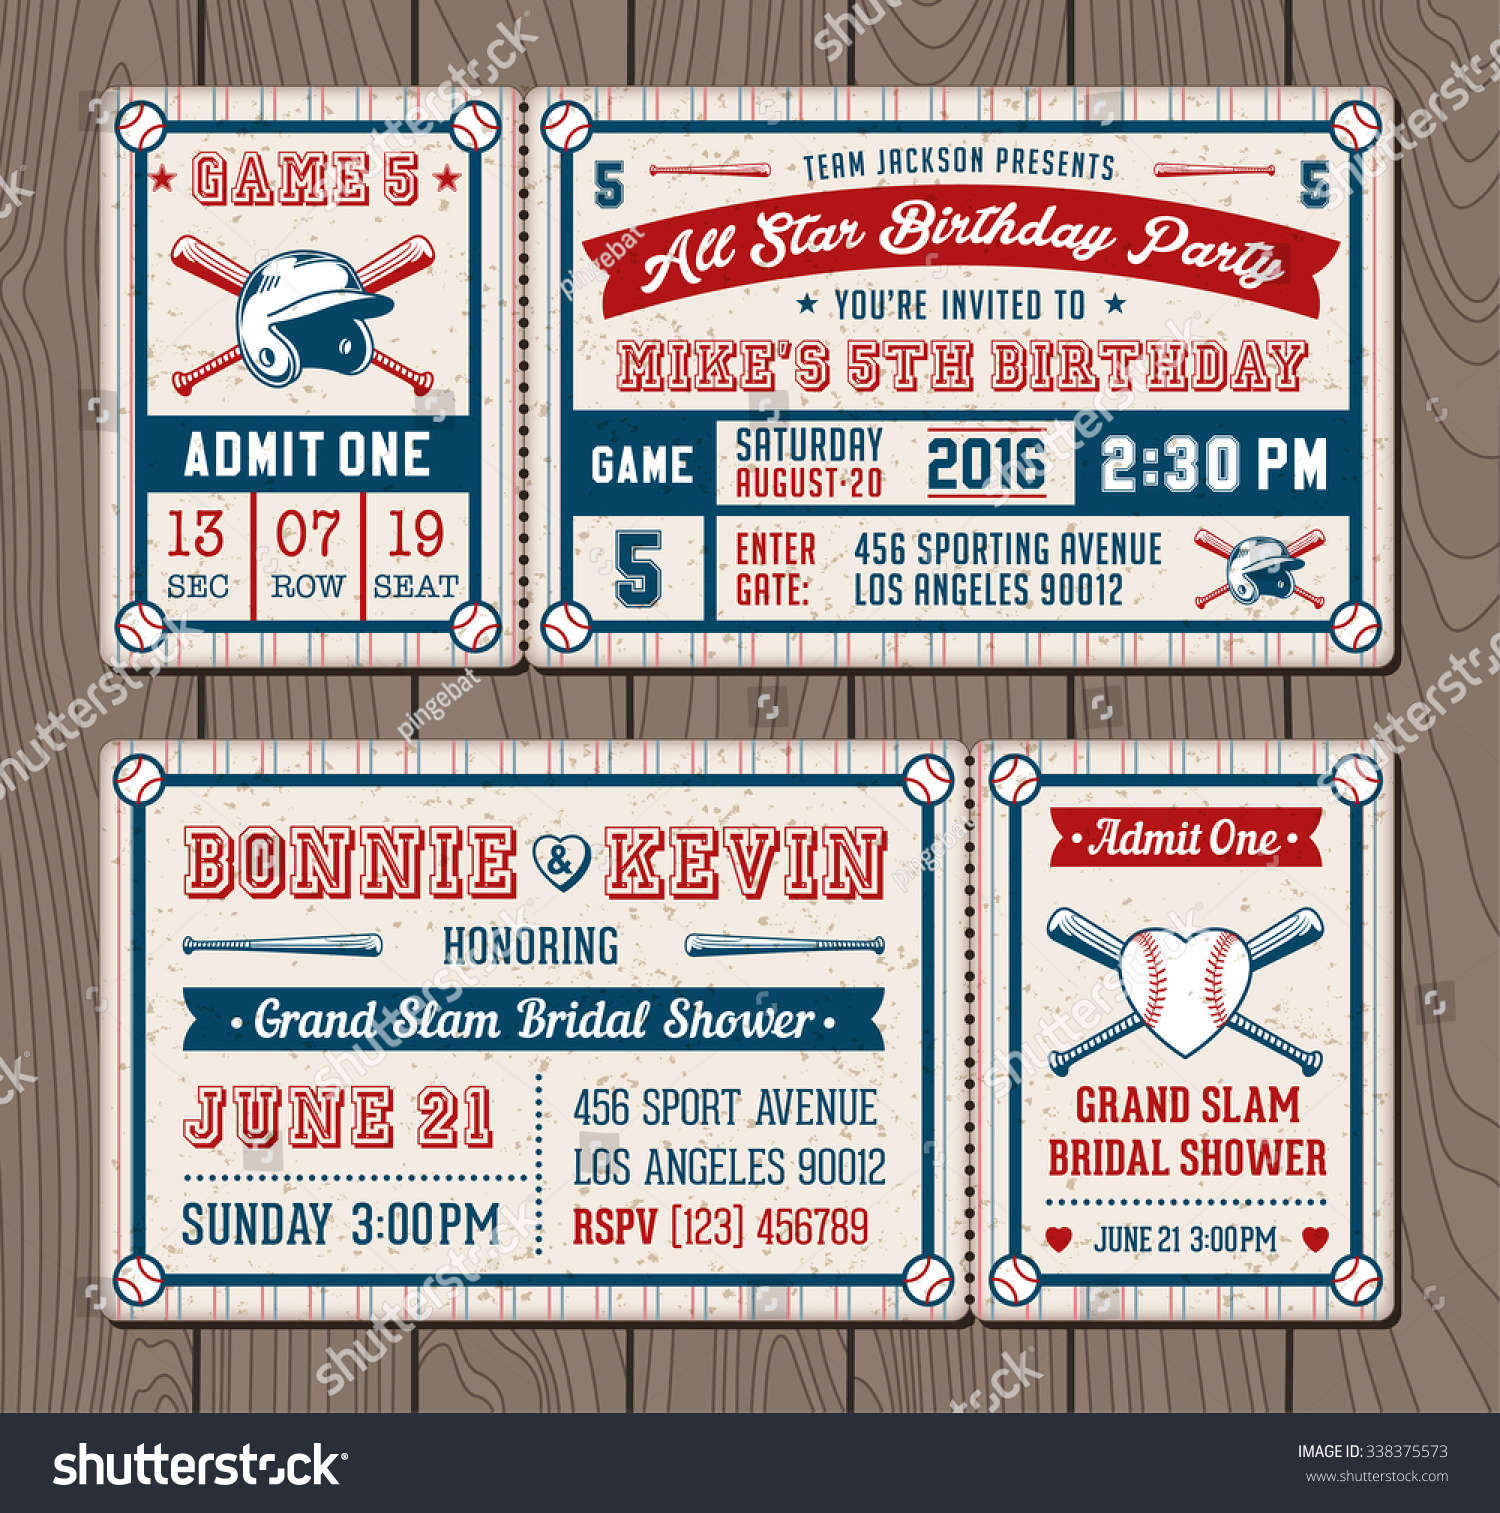 Vector Illustrations Invitation Tickets Baseball Softball Stock